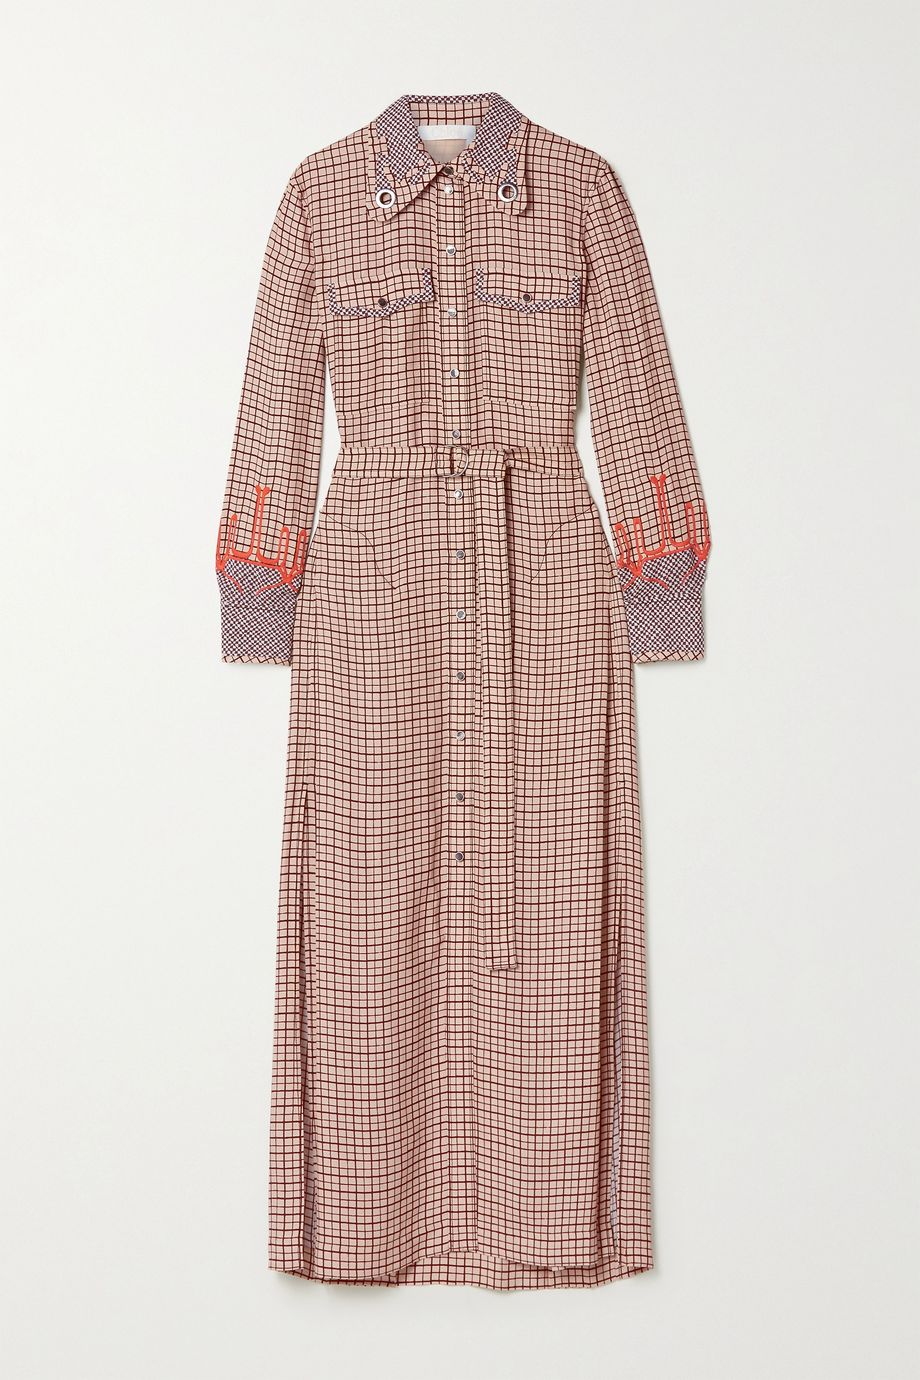 Chloé Kaia belted embroidered checked crepe and silk shirt dress